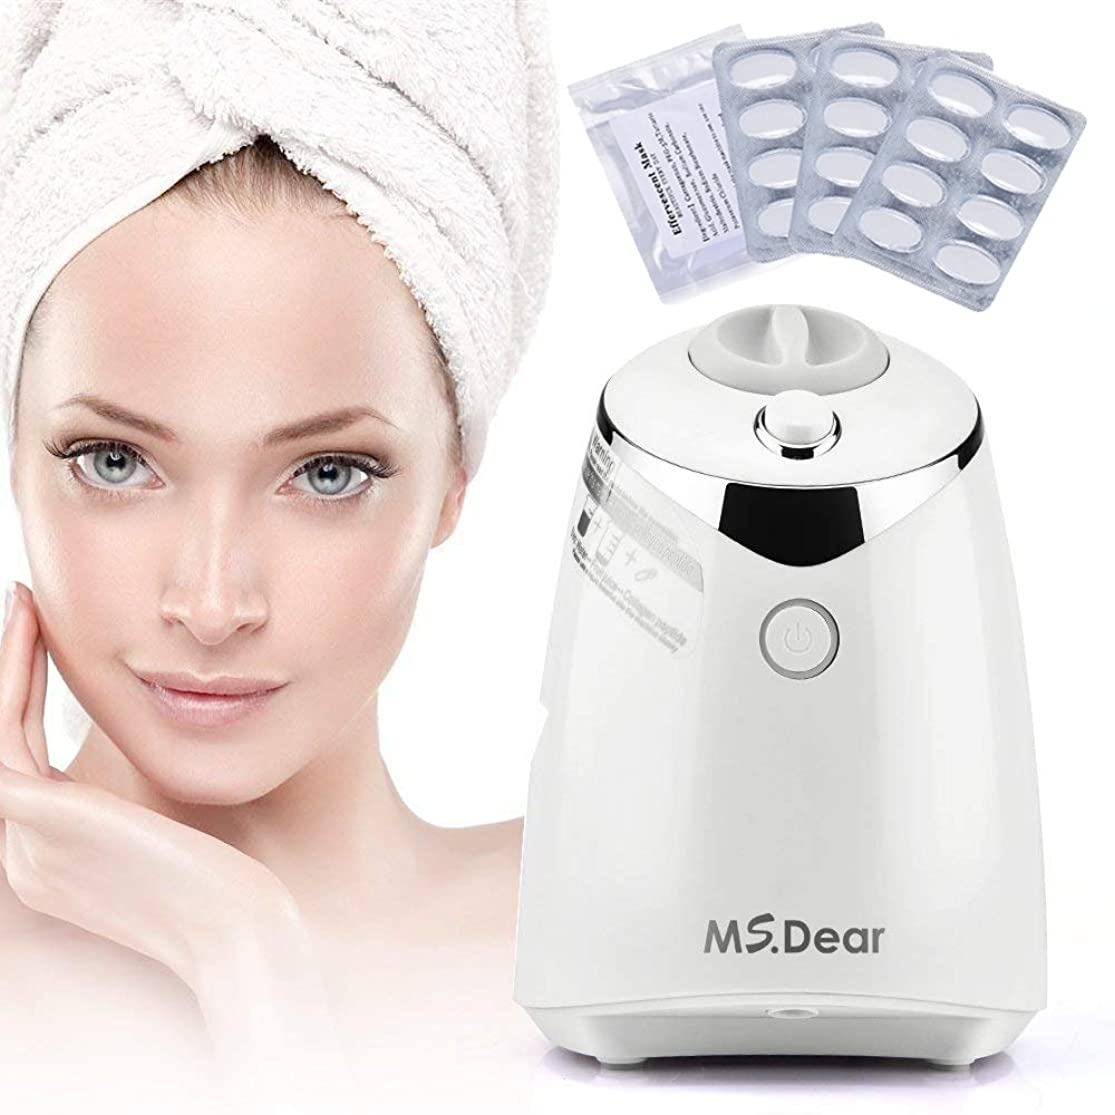 MS.DEAR Facial Mask Maker Machine, Collagen Fruit Vegetable DIY Automatic Face Mask Making, with 32 Counts Collagen Pills rmznkysx4